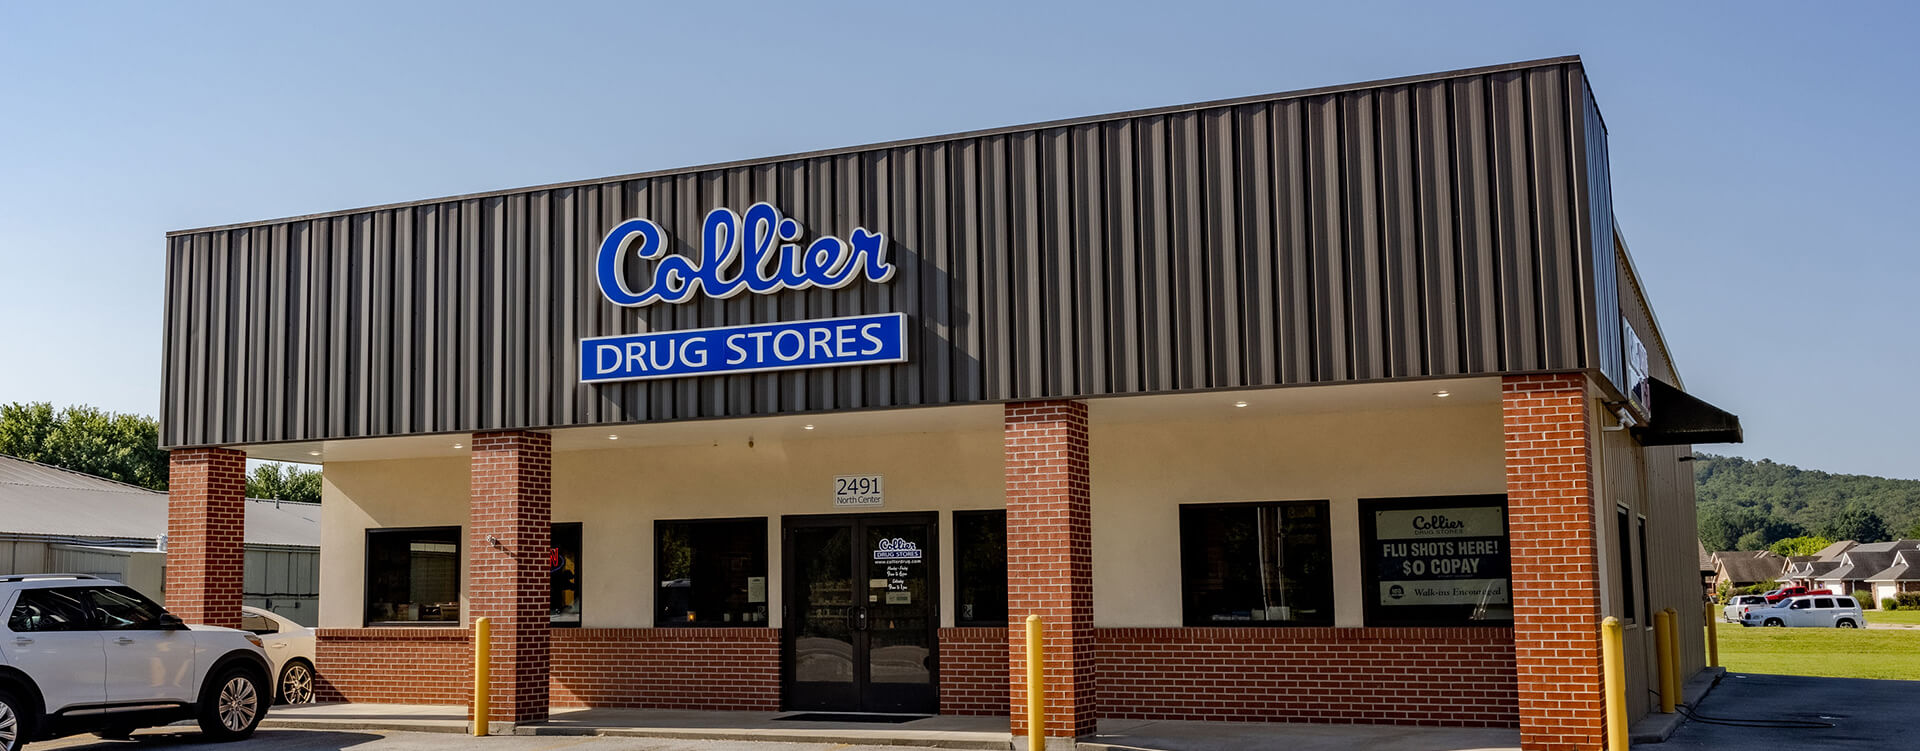 Photograph of Collier Drug Stores' Elkins location building